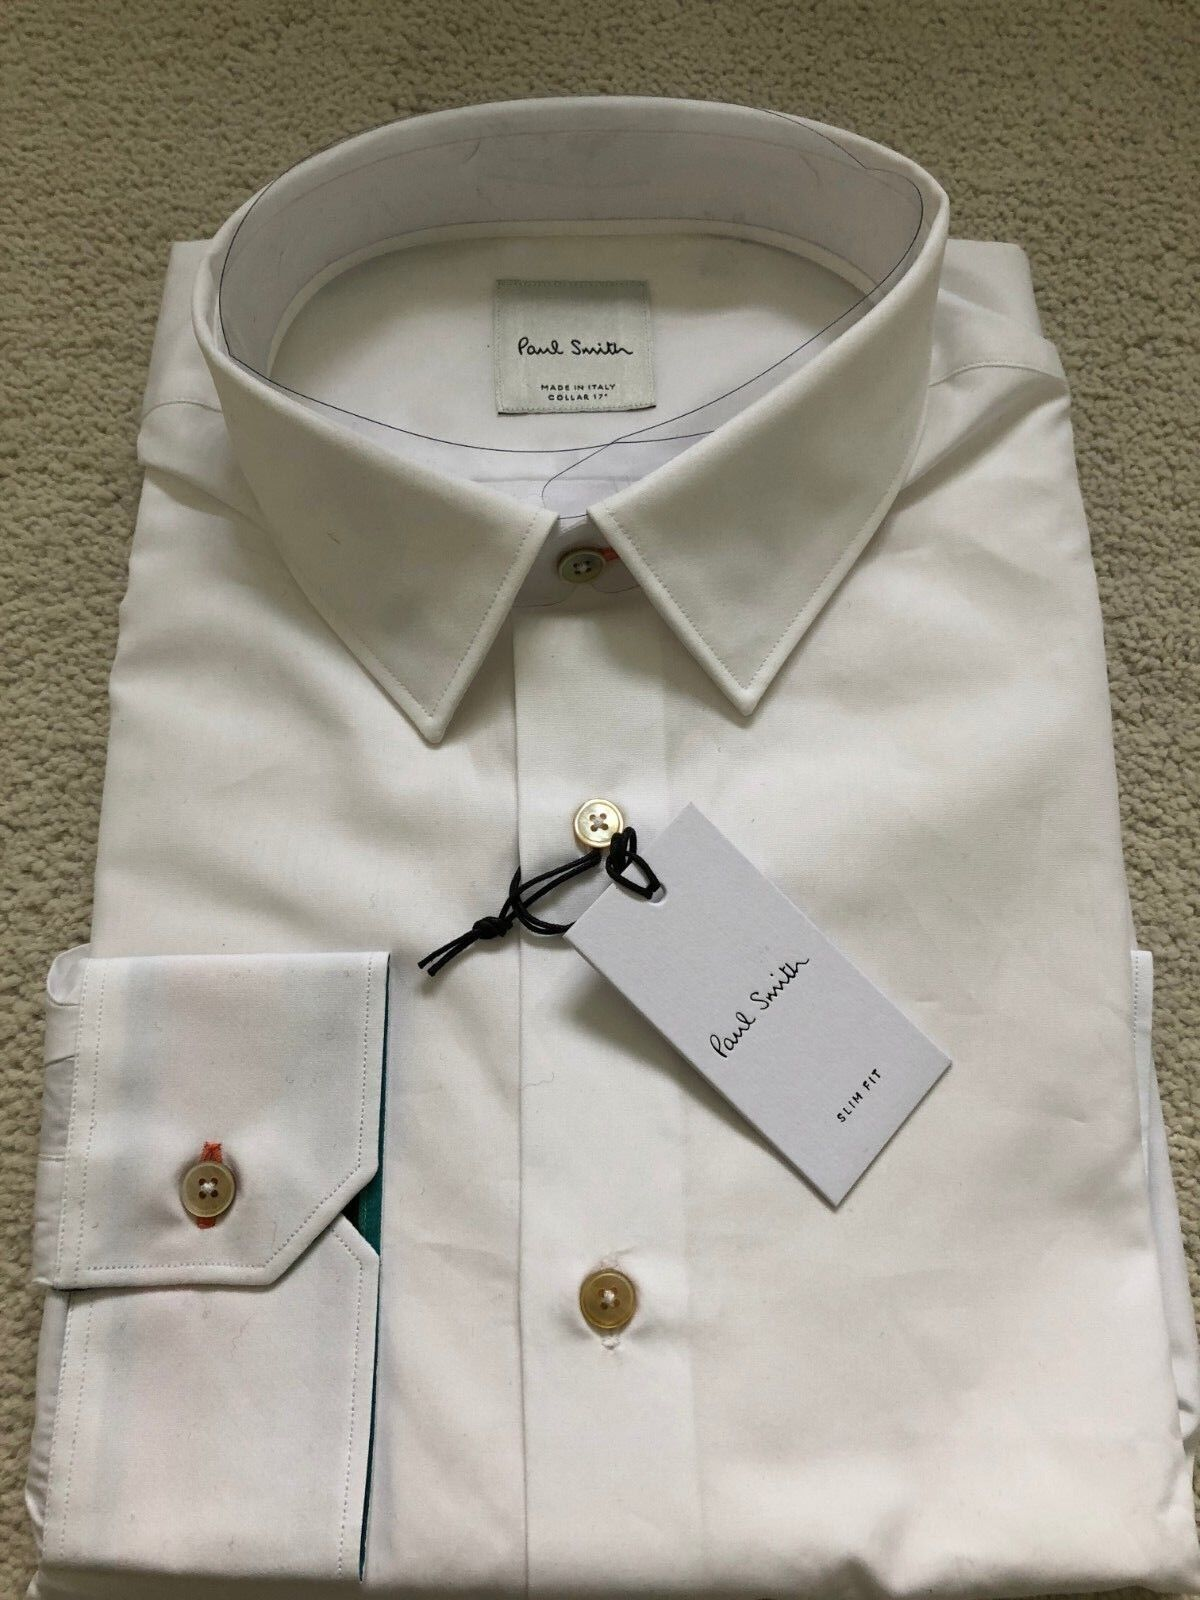 Paul Smith  Long Sleeve Formal TAILORED fit Shirt in White - RRP